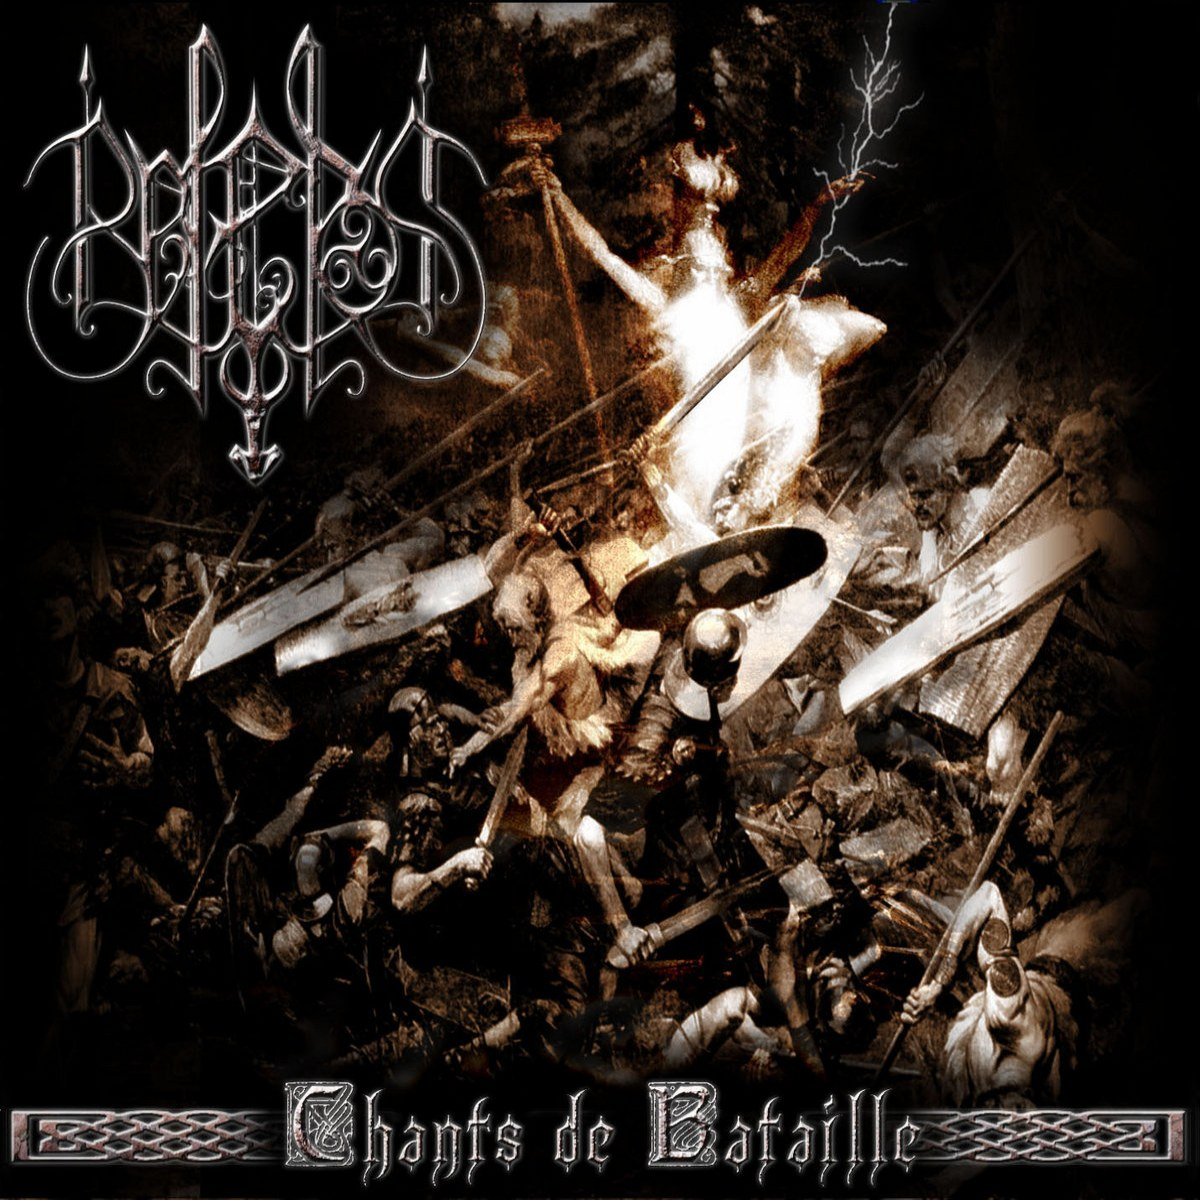 Review for Belenos - Chants de Bataille